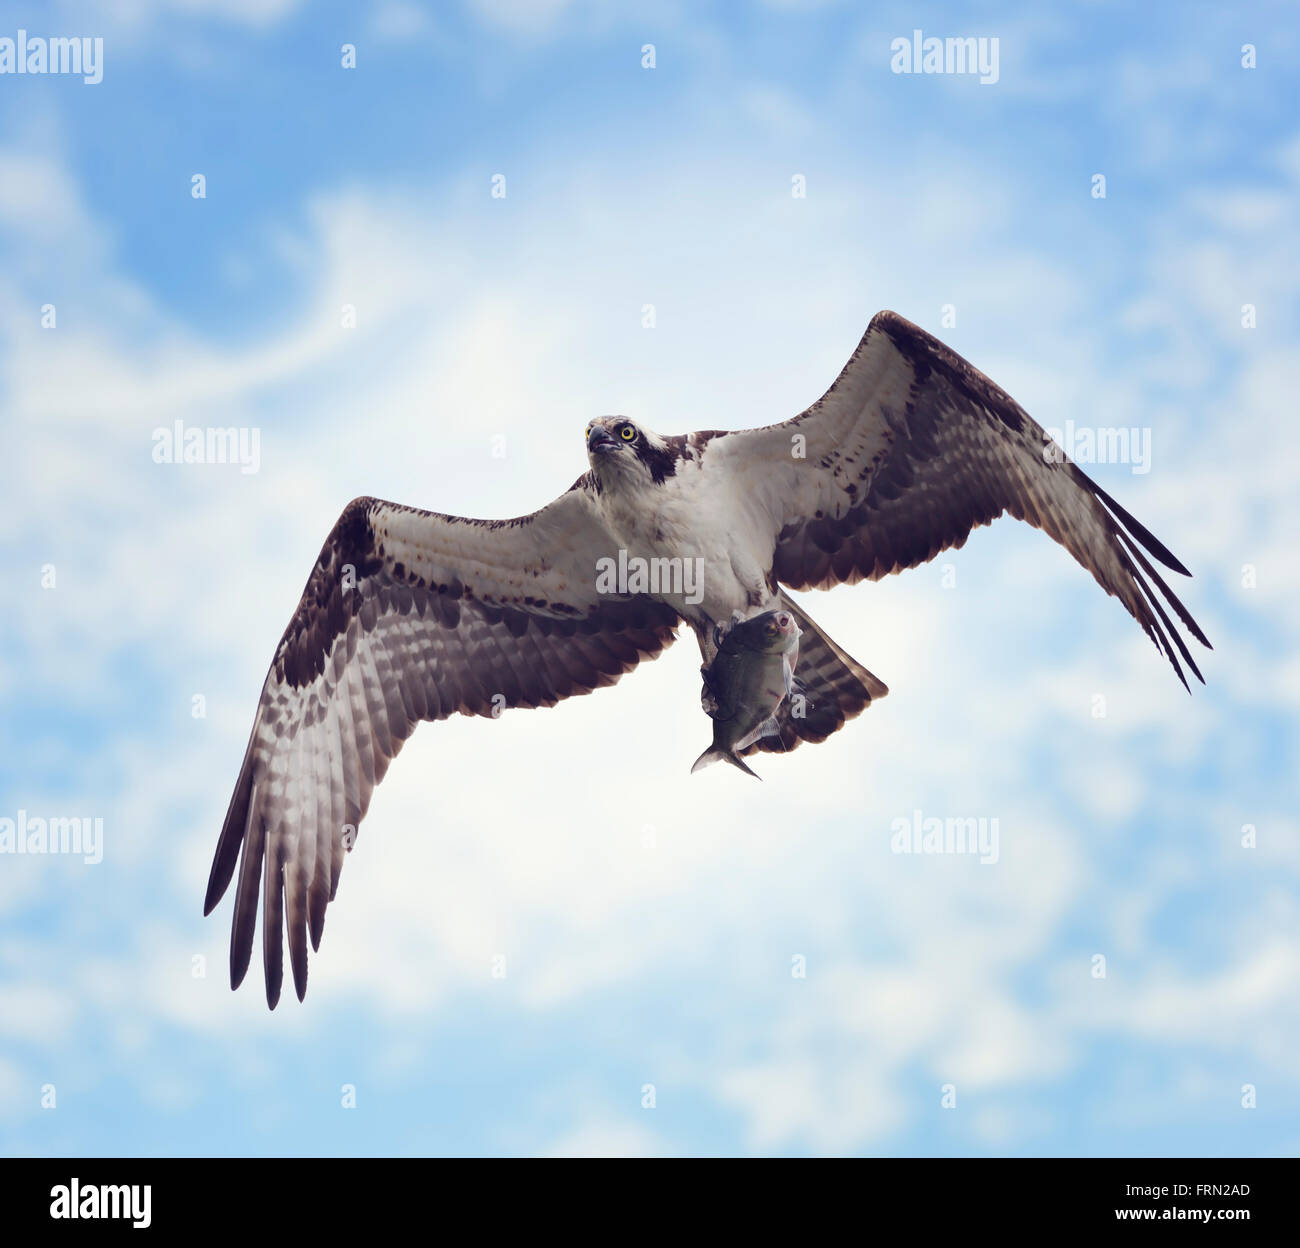 Osprey with Fish Against the Blue Sky - Stock Image